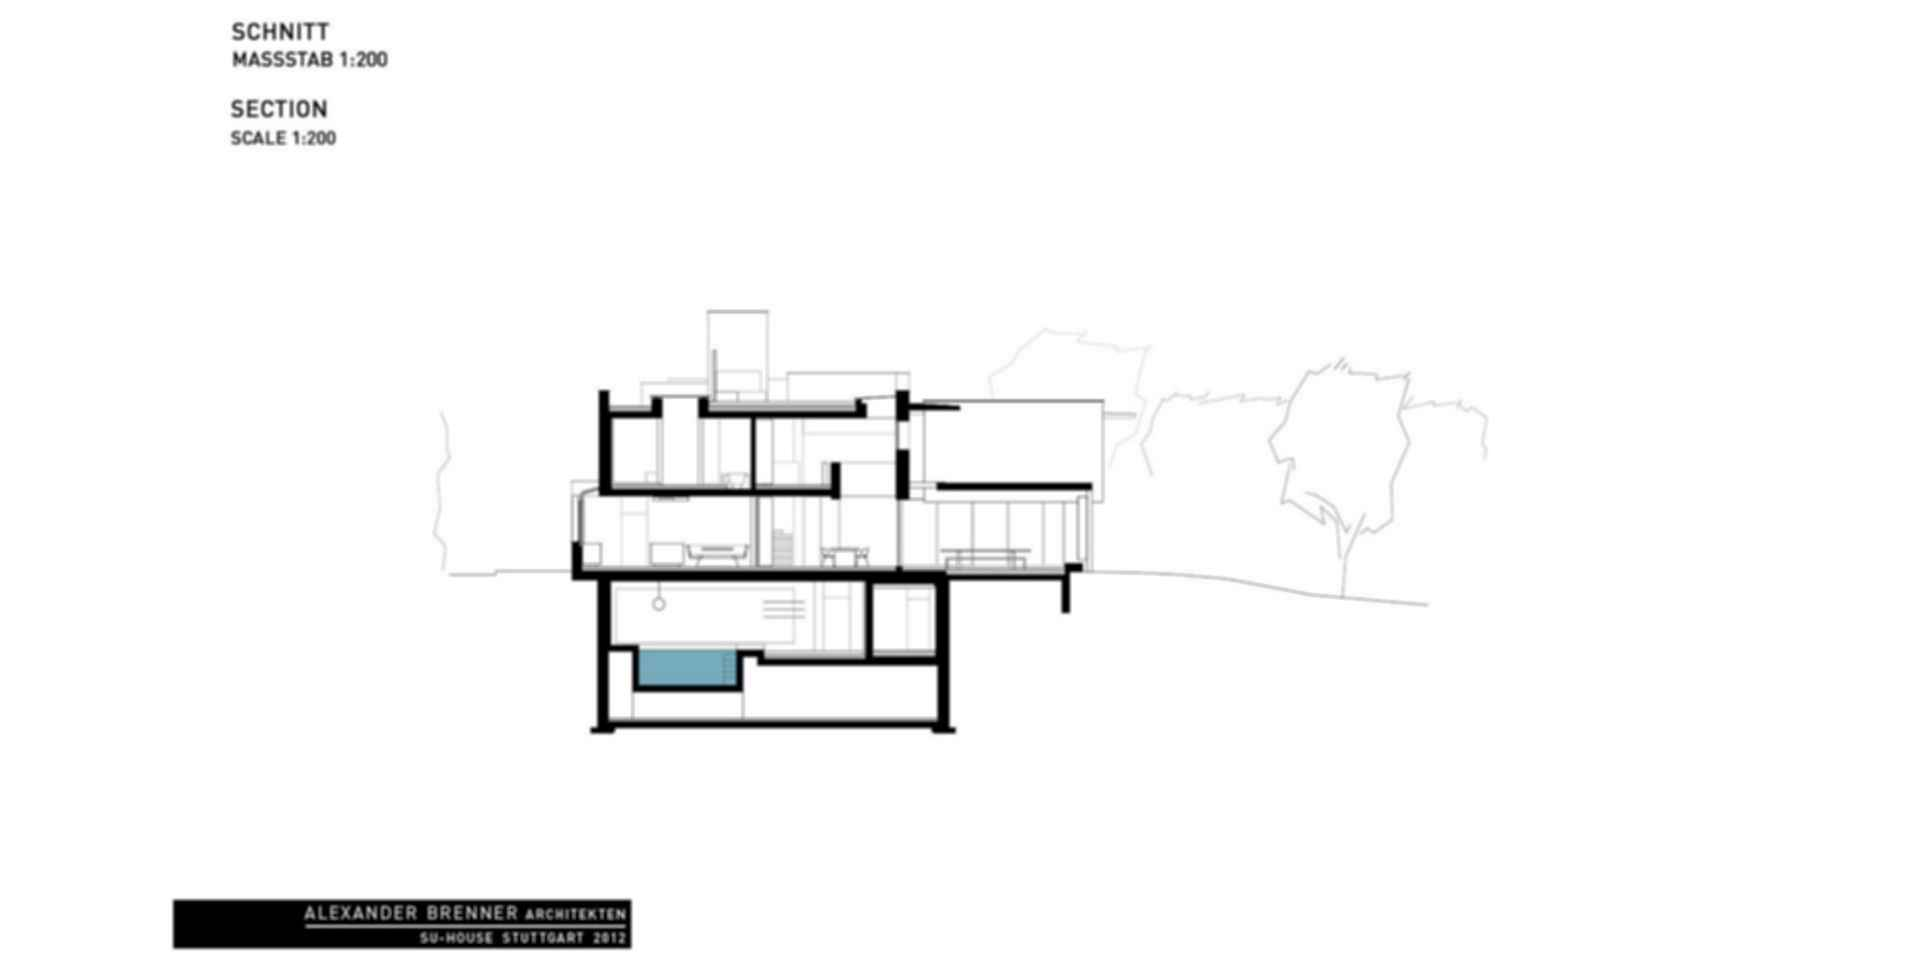 SU House - Section